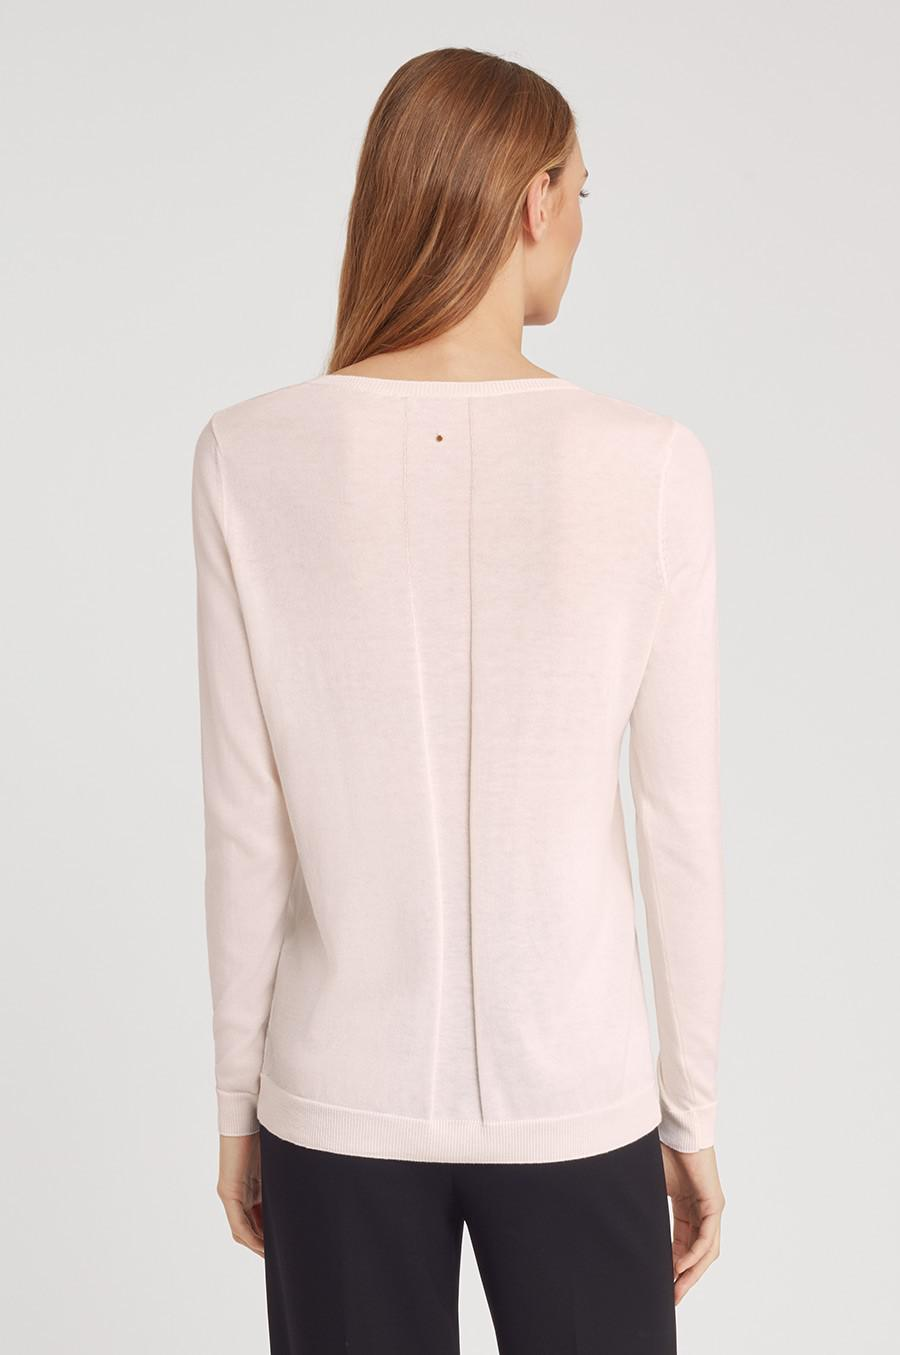 Women's Classic Cotton Cashmere V-Neck Sweater in Blush Pink   Size: 2